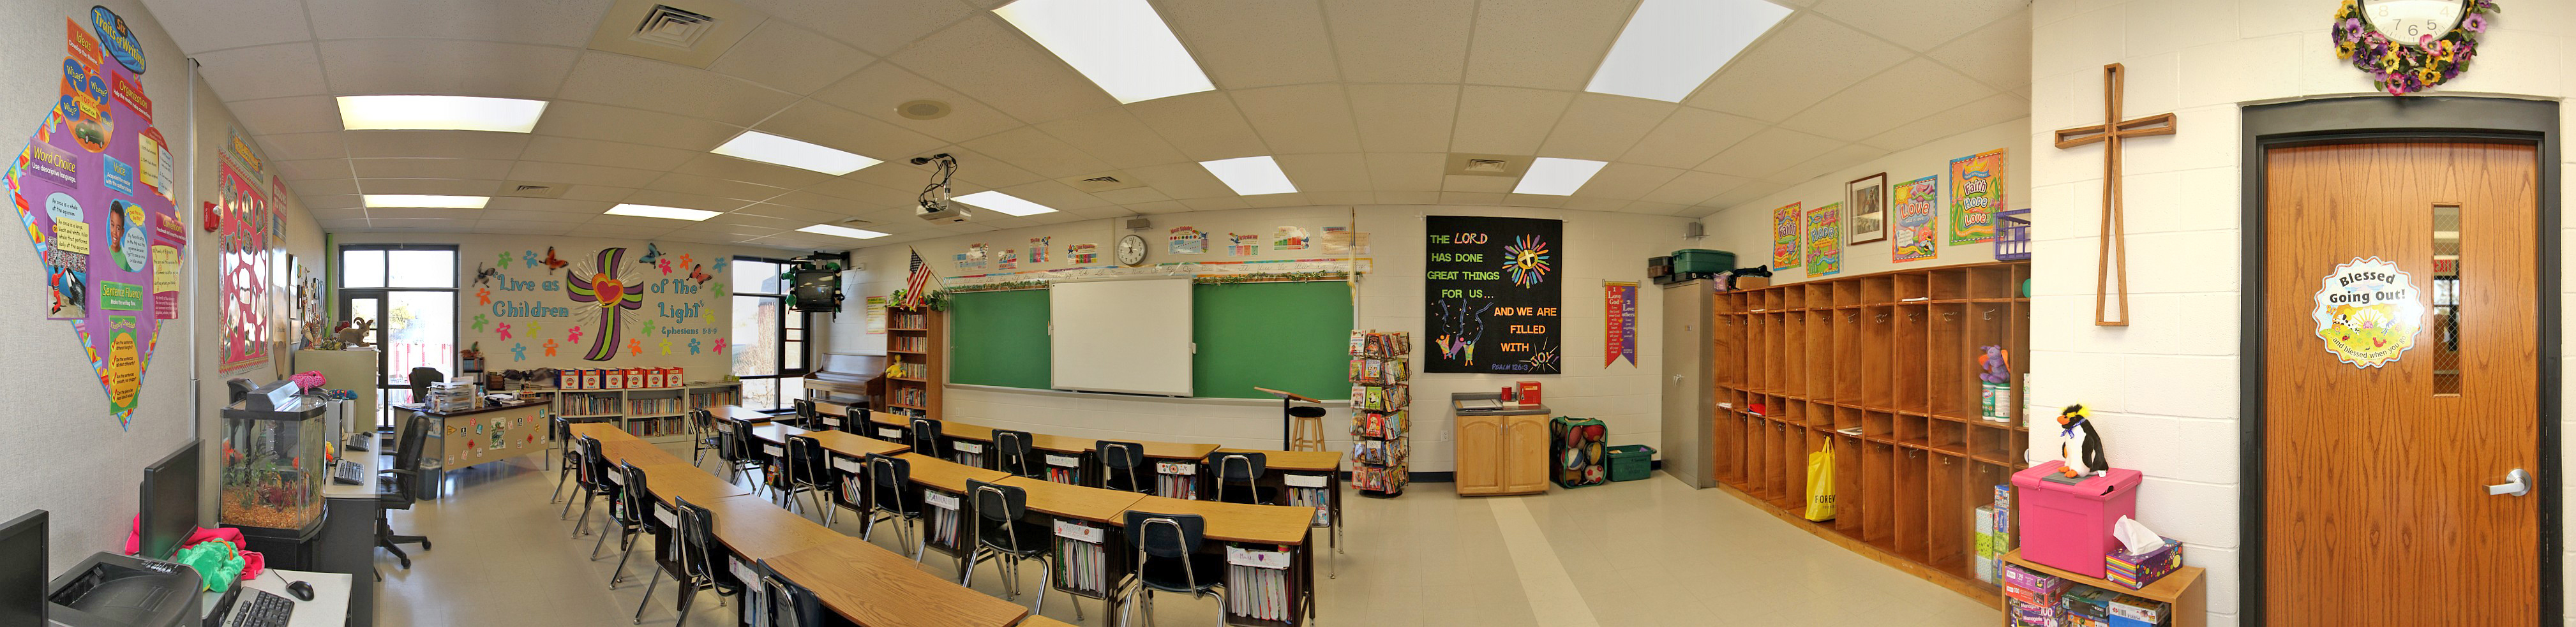 Modern Middle School Classroom ~ Virtual tour good shepherd lutheran schoolgood